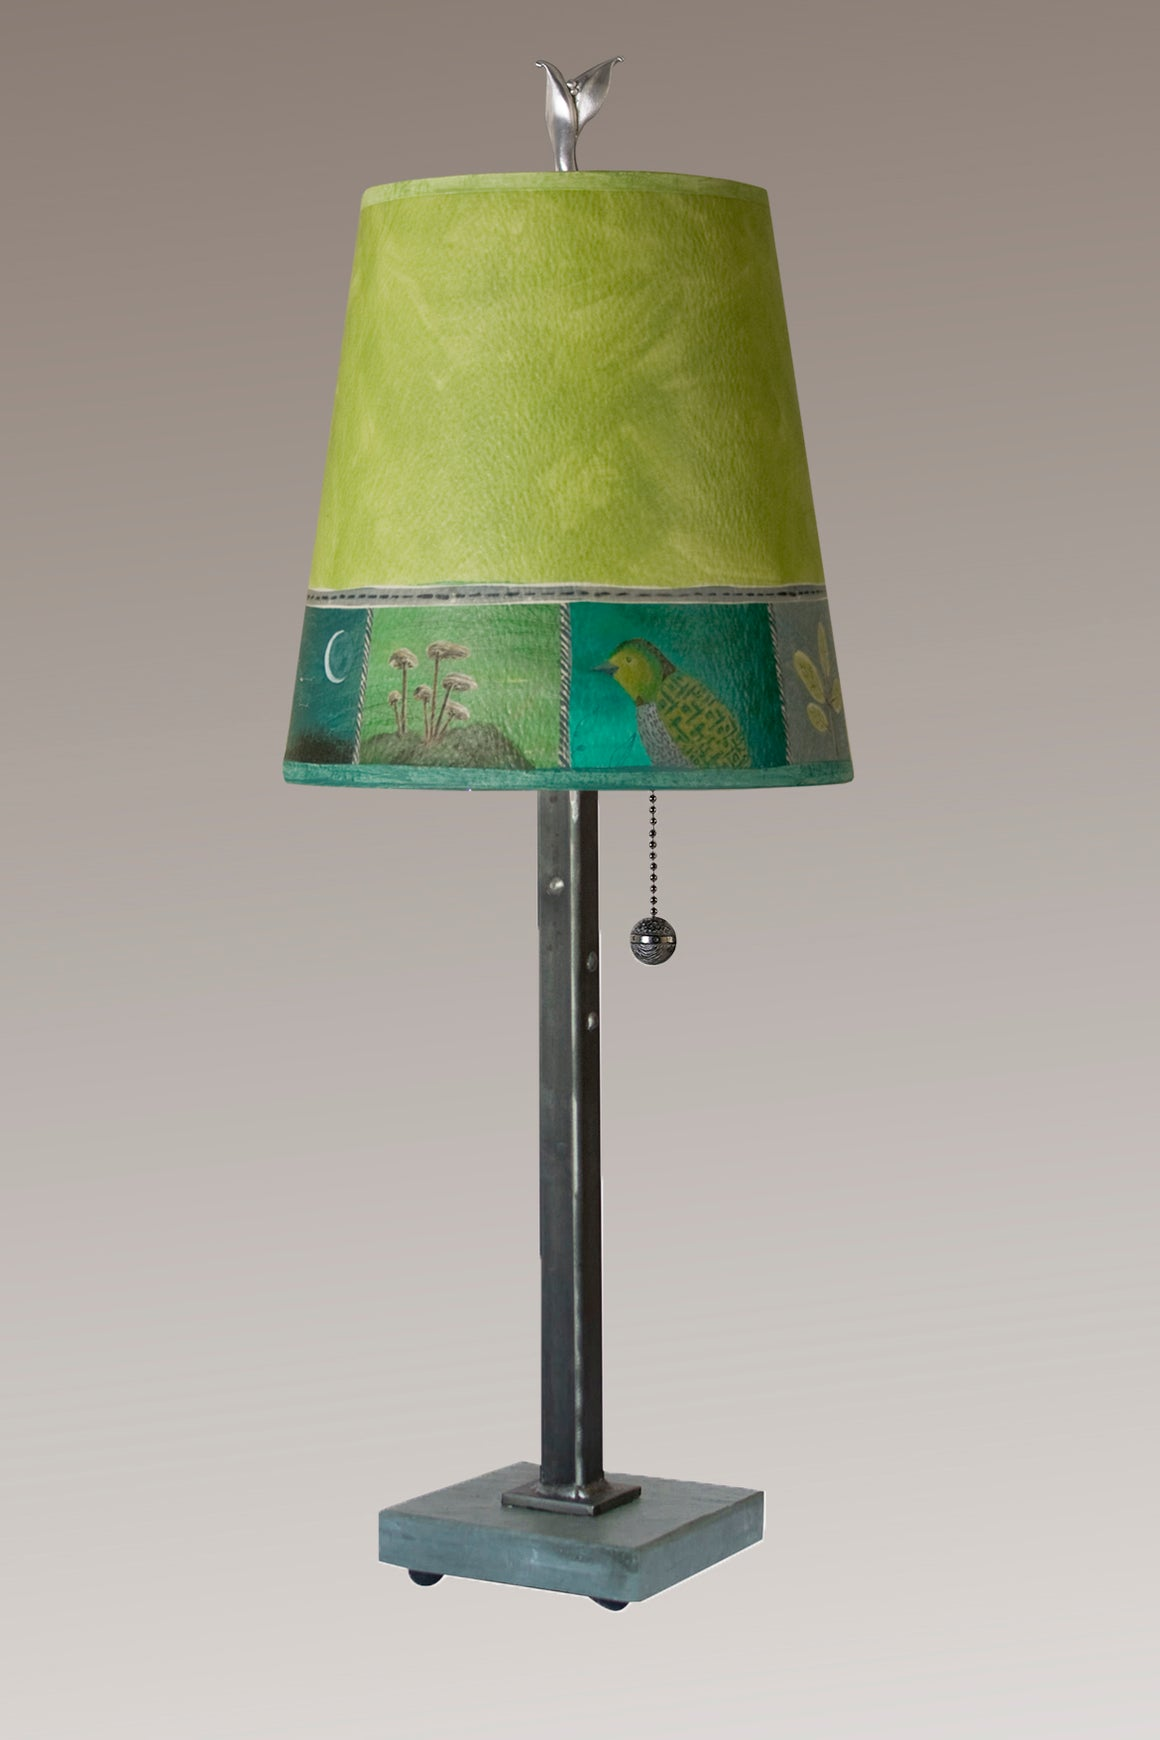 Steel Table Lamp on Vermont Slate Base with Small Drum Shade in Woodland Trails in Leaf